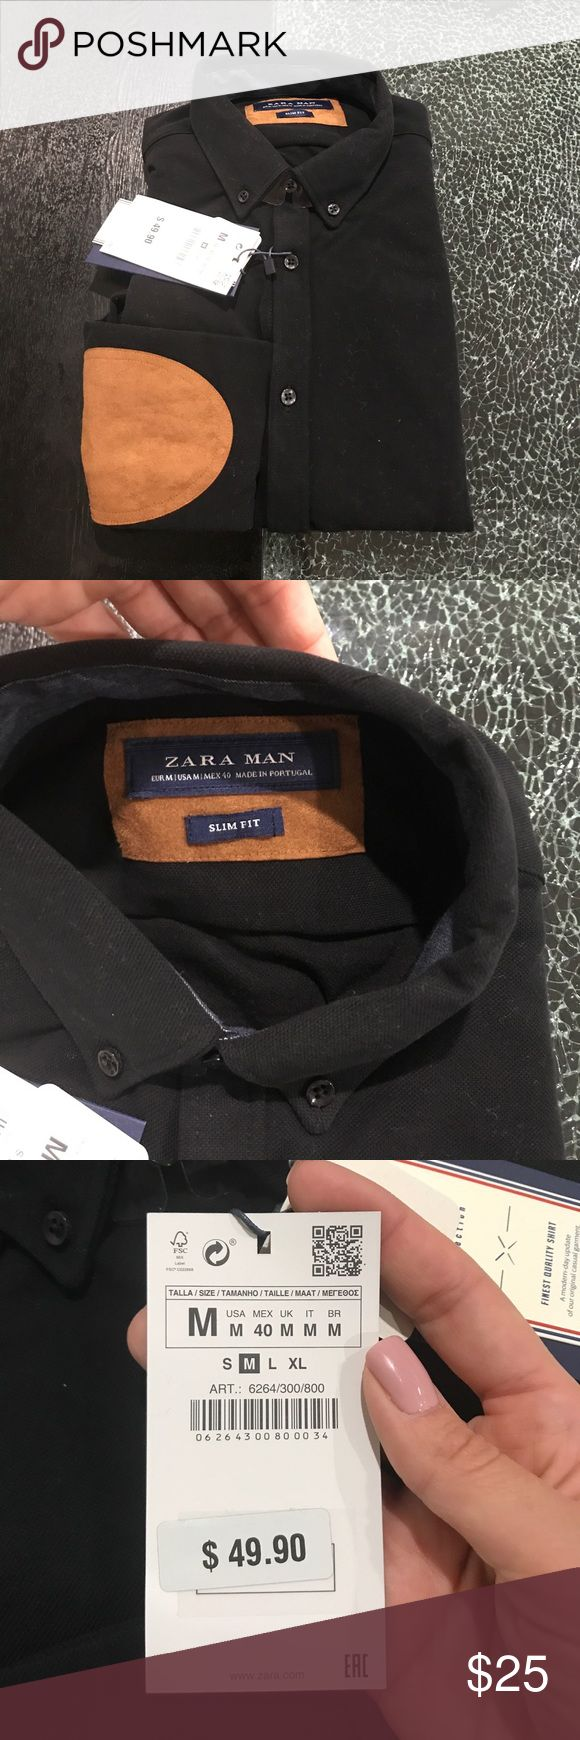 Zara Pique Shirt with Elbow Patch Brand new with tags attached Zara Pique Collection slim fit, classic Pique shirt featuring button detail on the hemline, long sleeves with elbow patches and button up fastening. Ecologically grown cotton. Retail is $49.90 Zara Shirts Casual Button Down Shirts